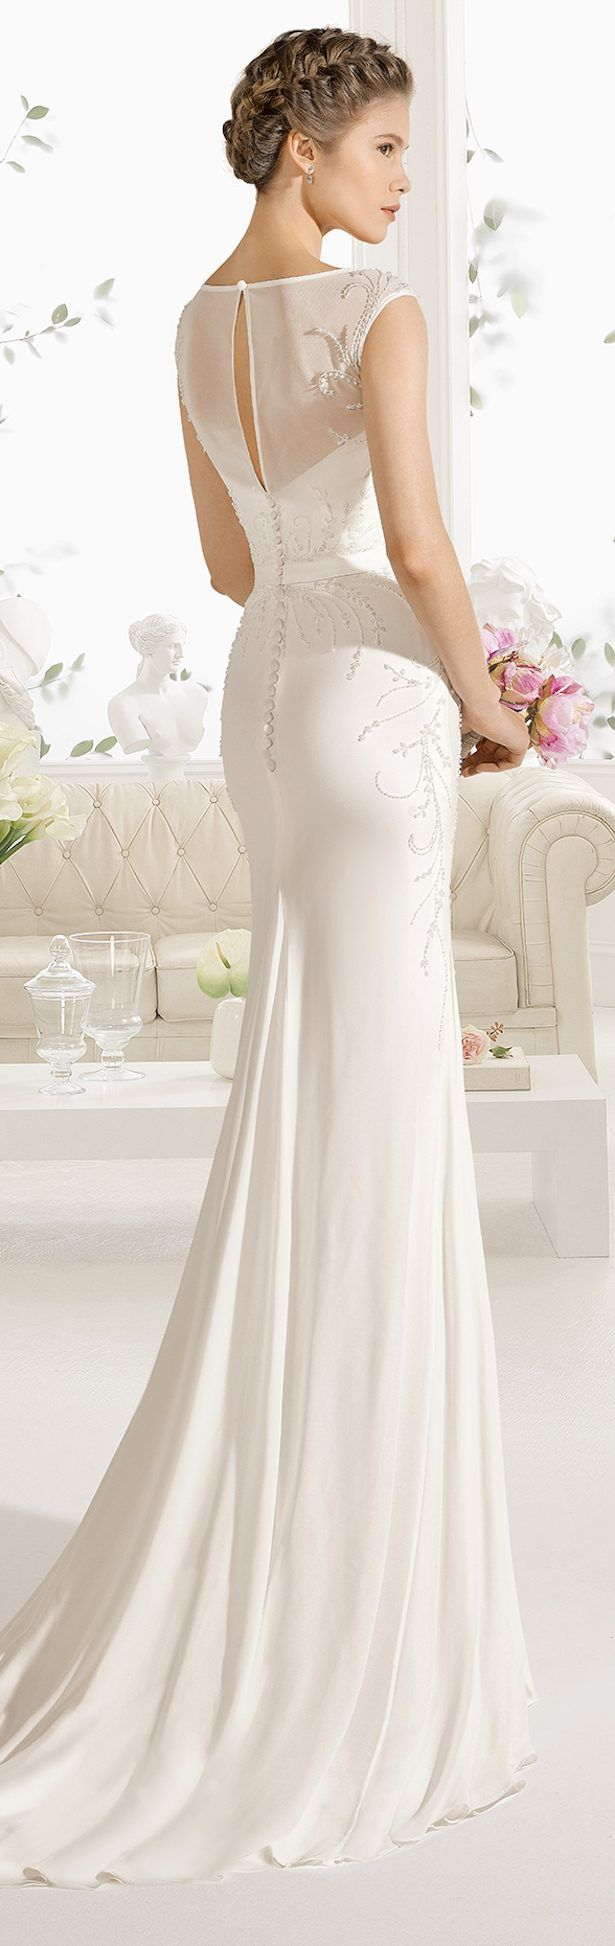 25+ best ideas about Bridal Collection on Pinterest ...